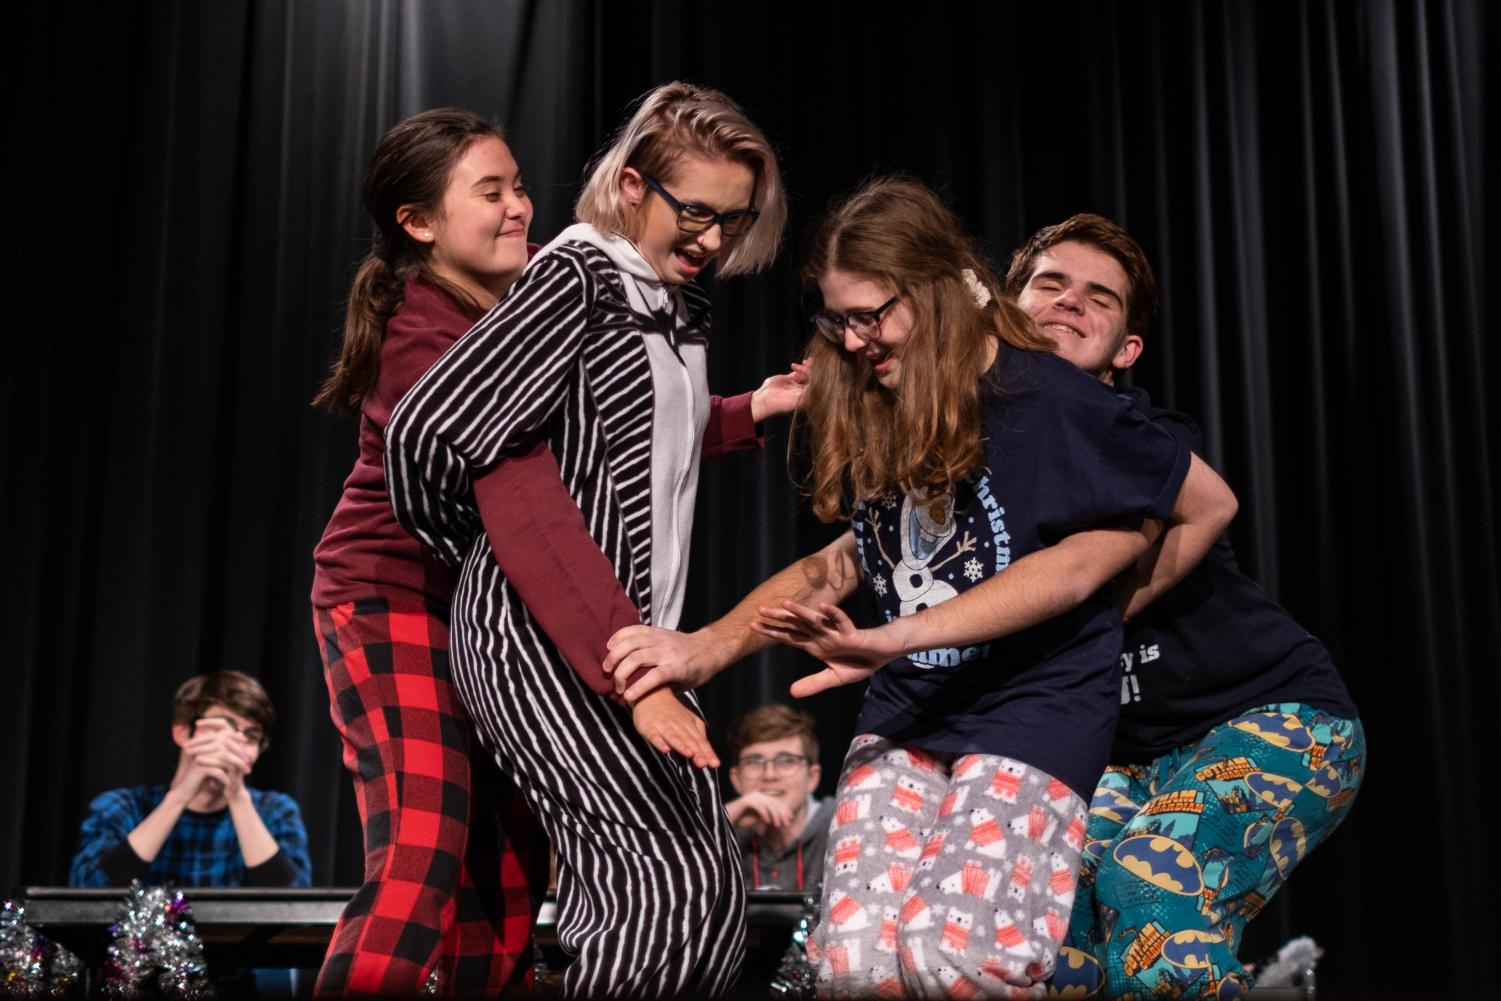 Each game in improv allows for the actors and actresses to better their reaction time and on-the-spot thinking. Many games end up shouts and laughter as the actors on stage  cannot hold back their laughter. Not only is improv entertaining for the audience, but for the fellow actors and actresses as well.